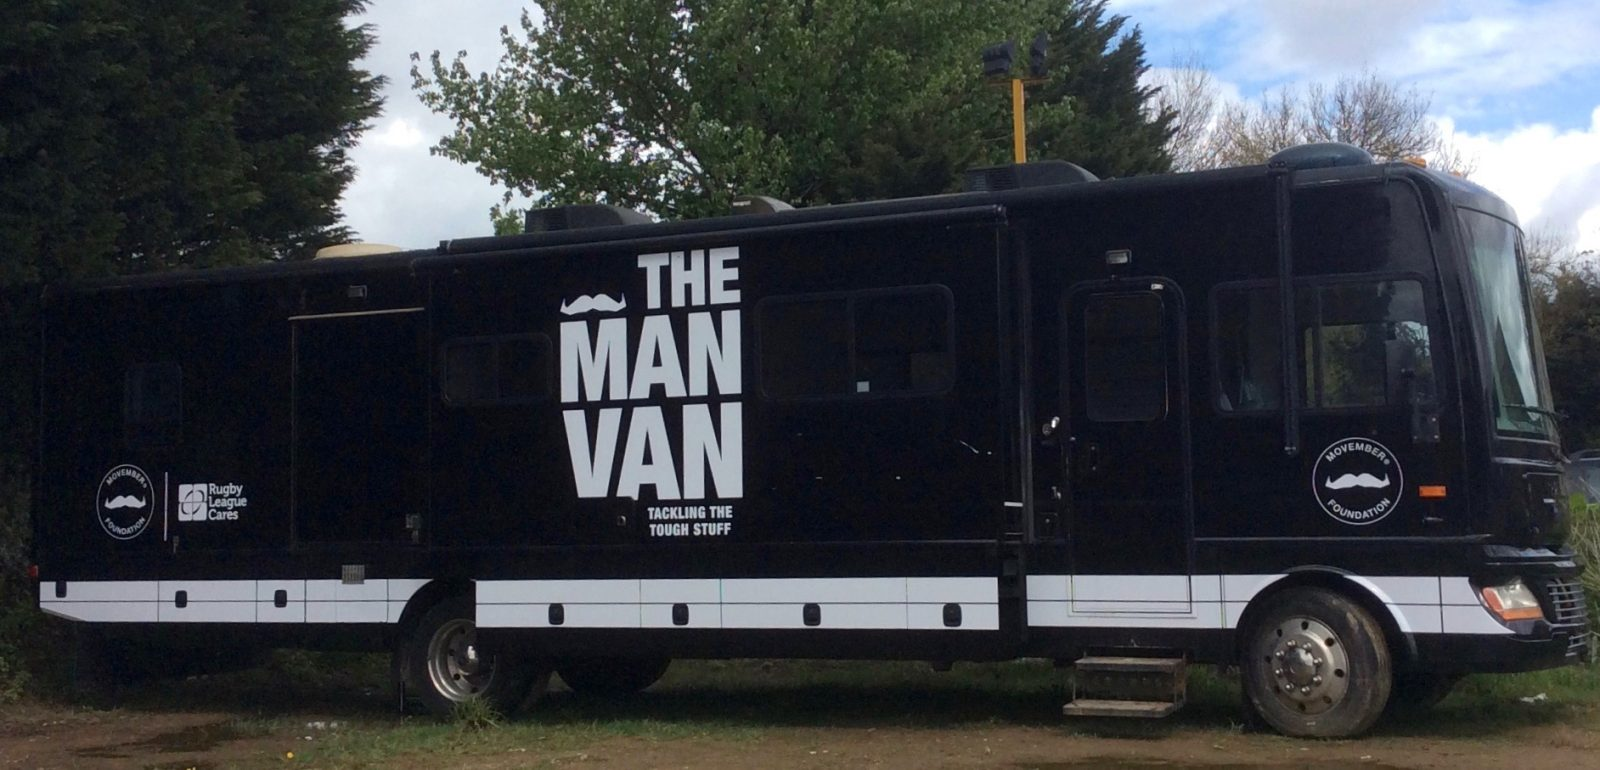 ManVan ready to make a Magical difference to men's health